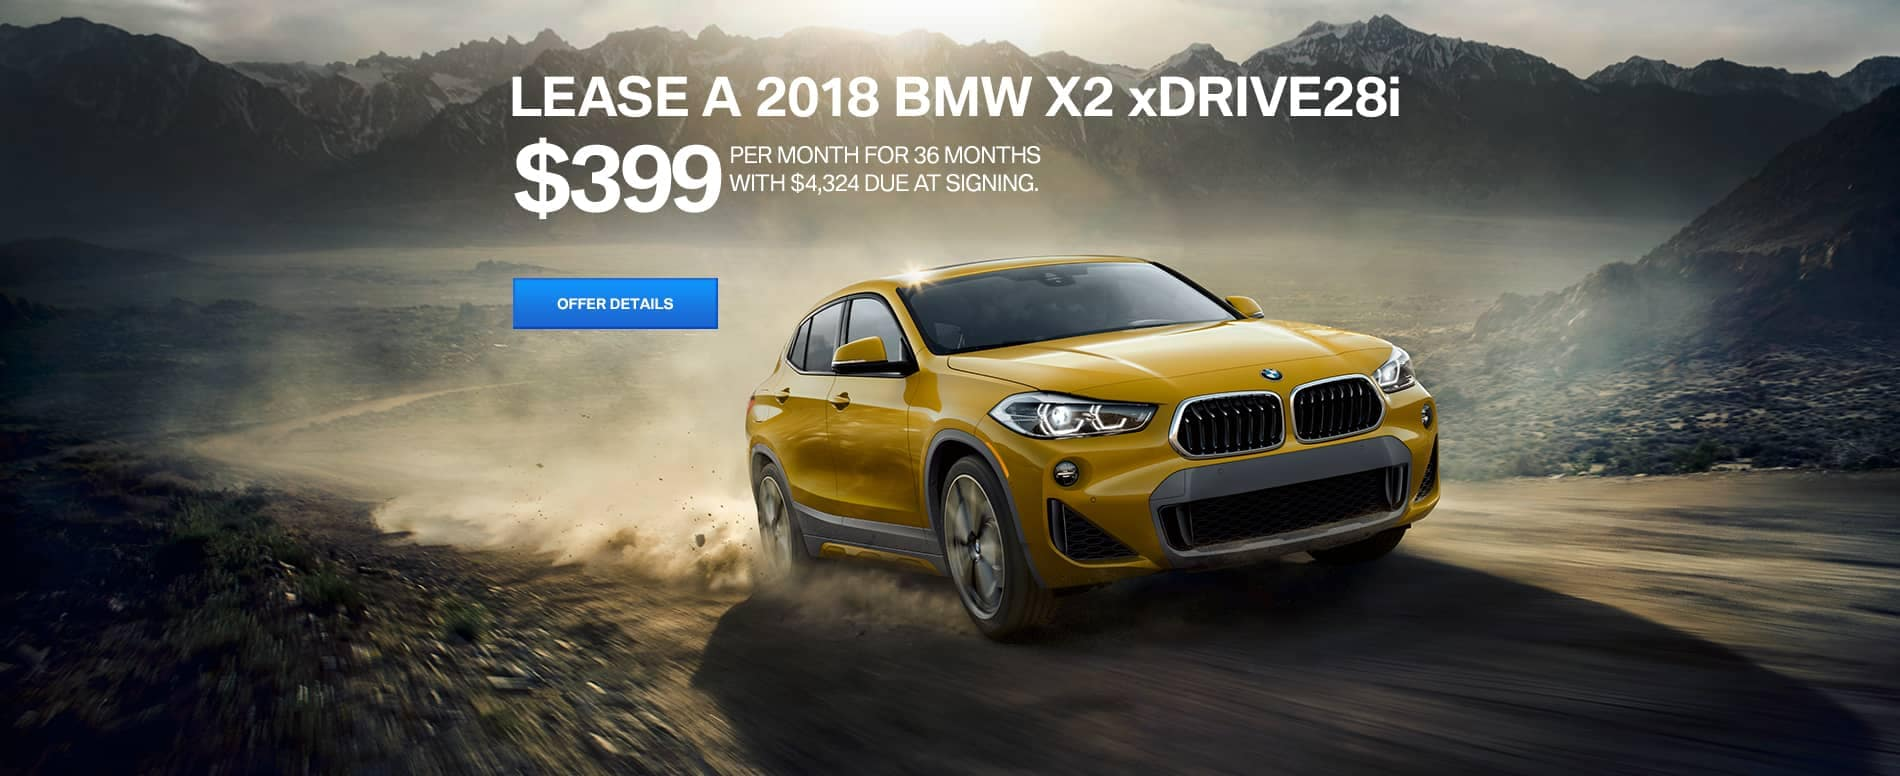 2018_X2_xDrive28i_NATIONAL_$399_Lease